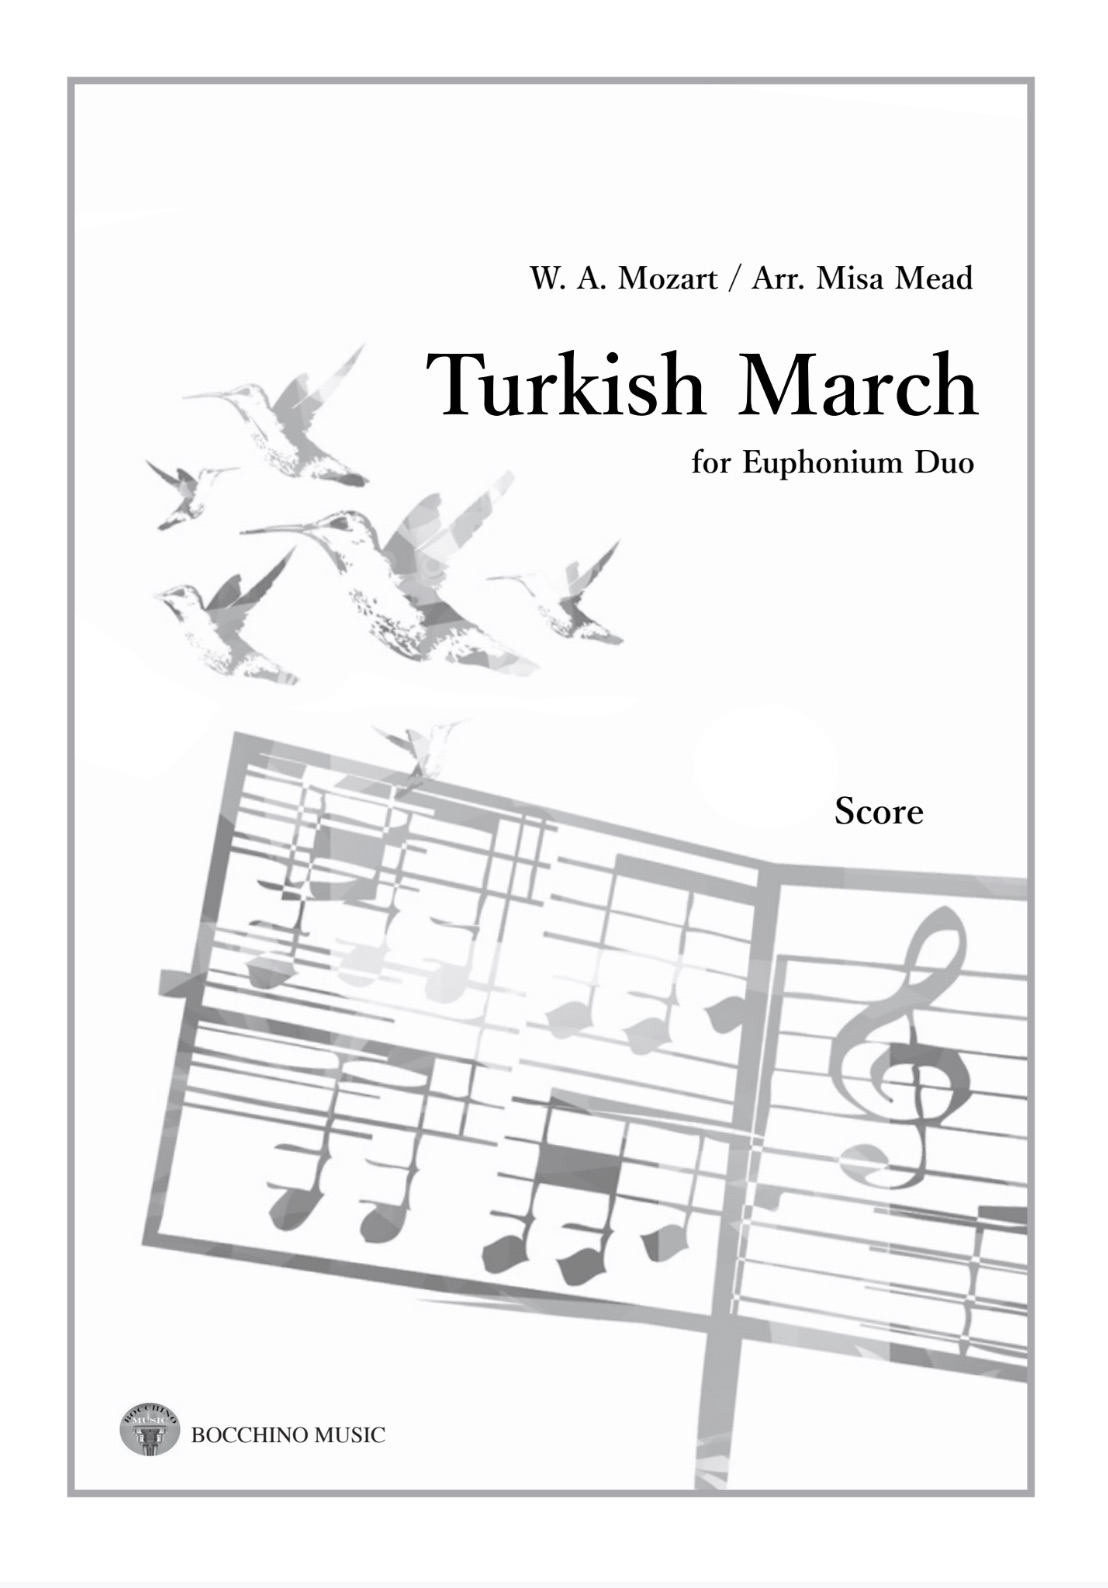 Digital Downland - Turkish March - Mozart Arr. Misa Mead - Euphonium Duo